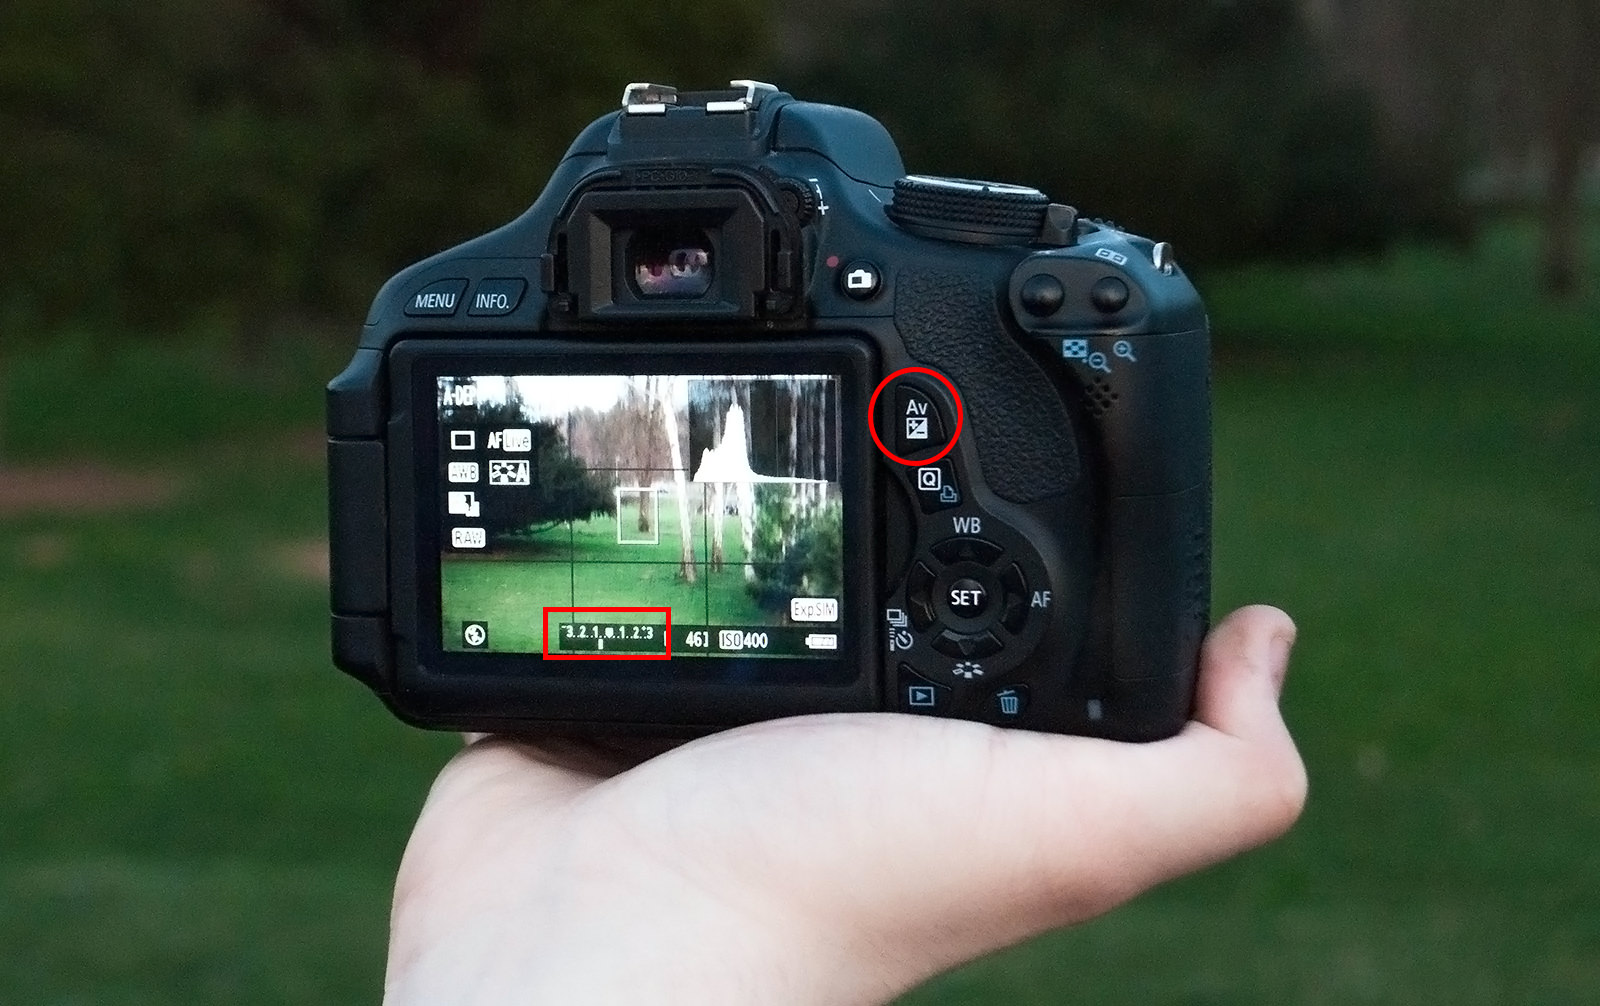 Exposure Compensation Camera Display Image